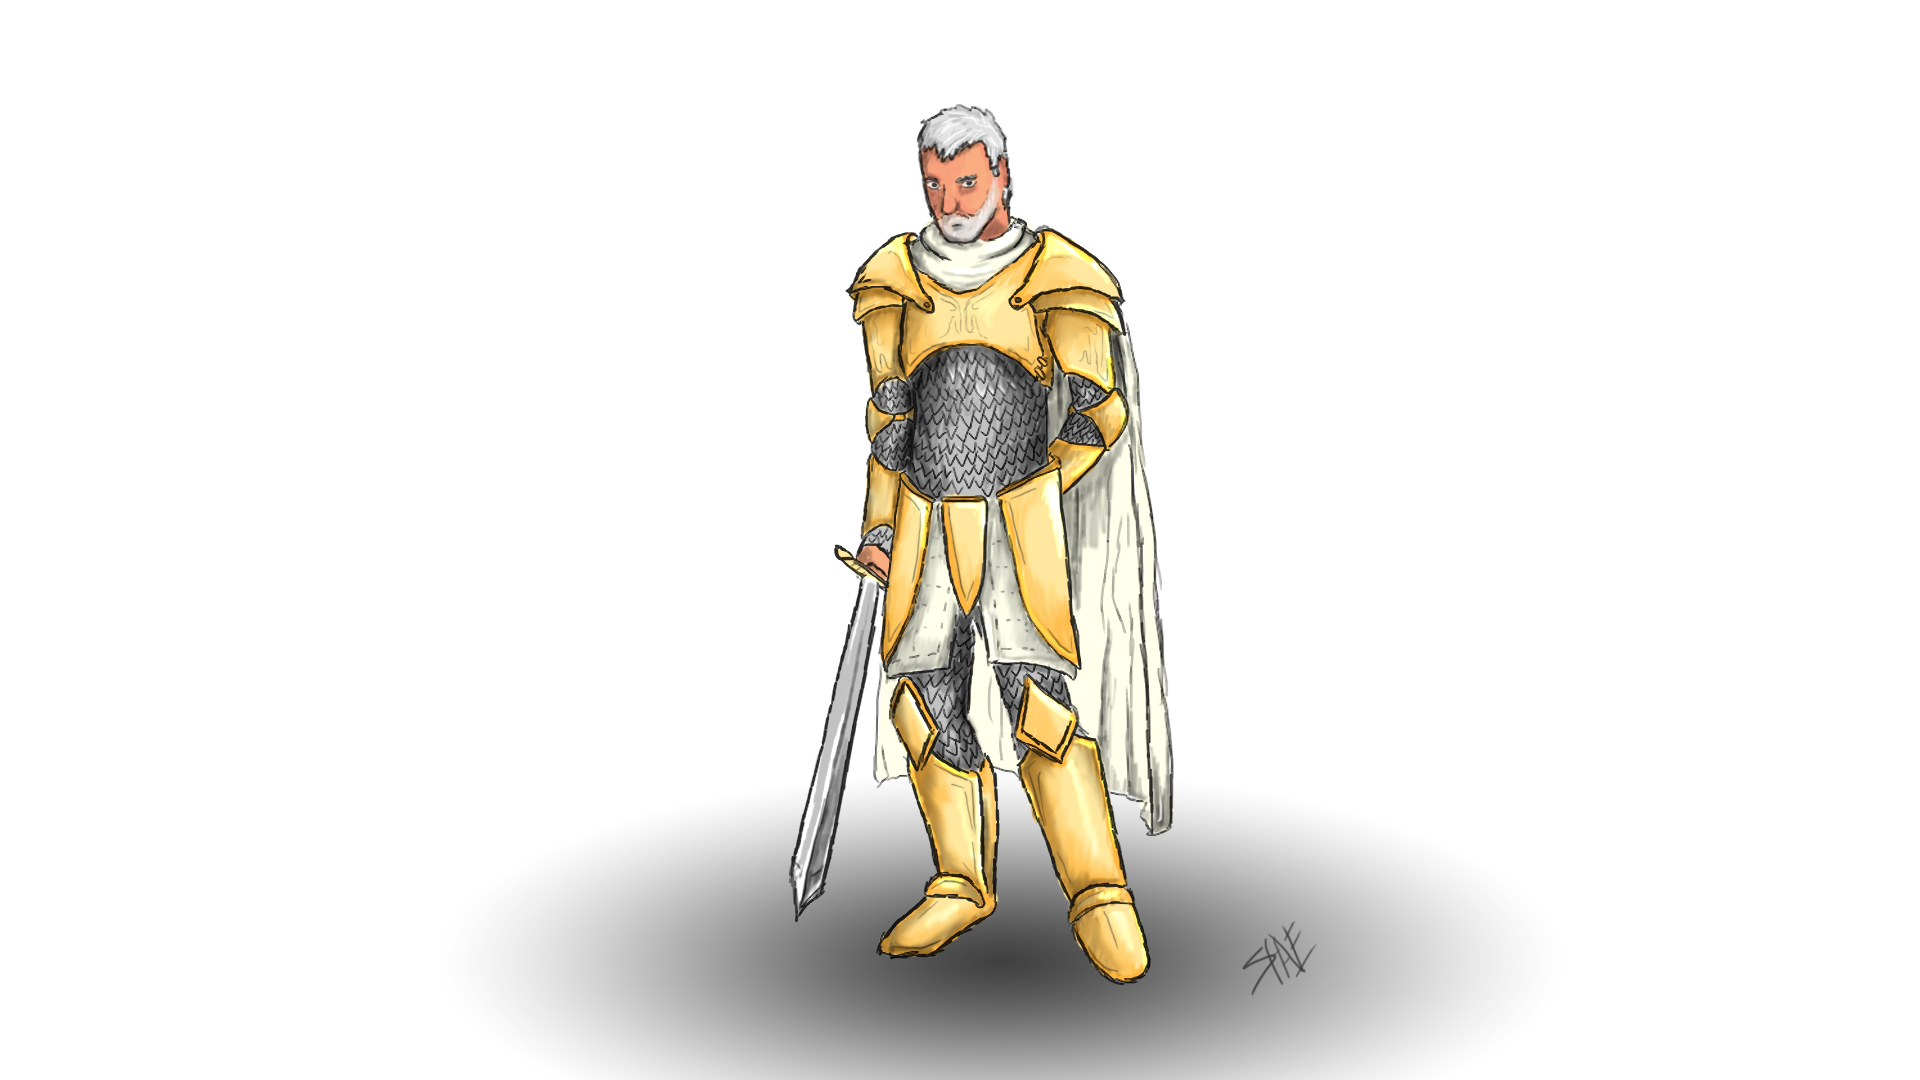 Barristan the Bold